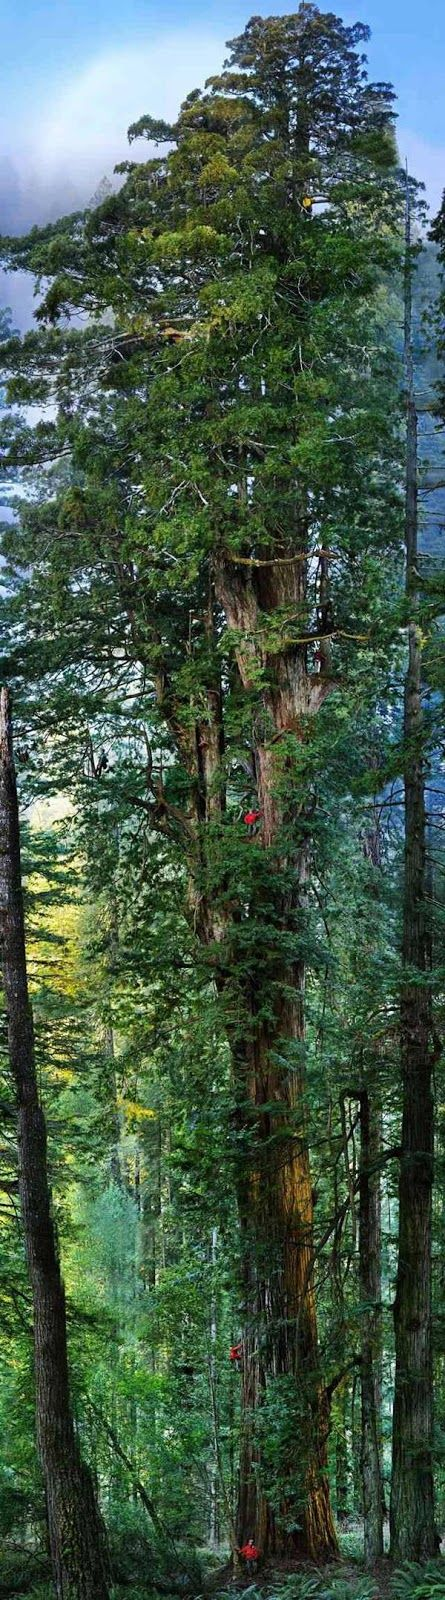 The Giant Redwood Trees